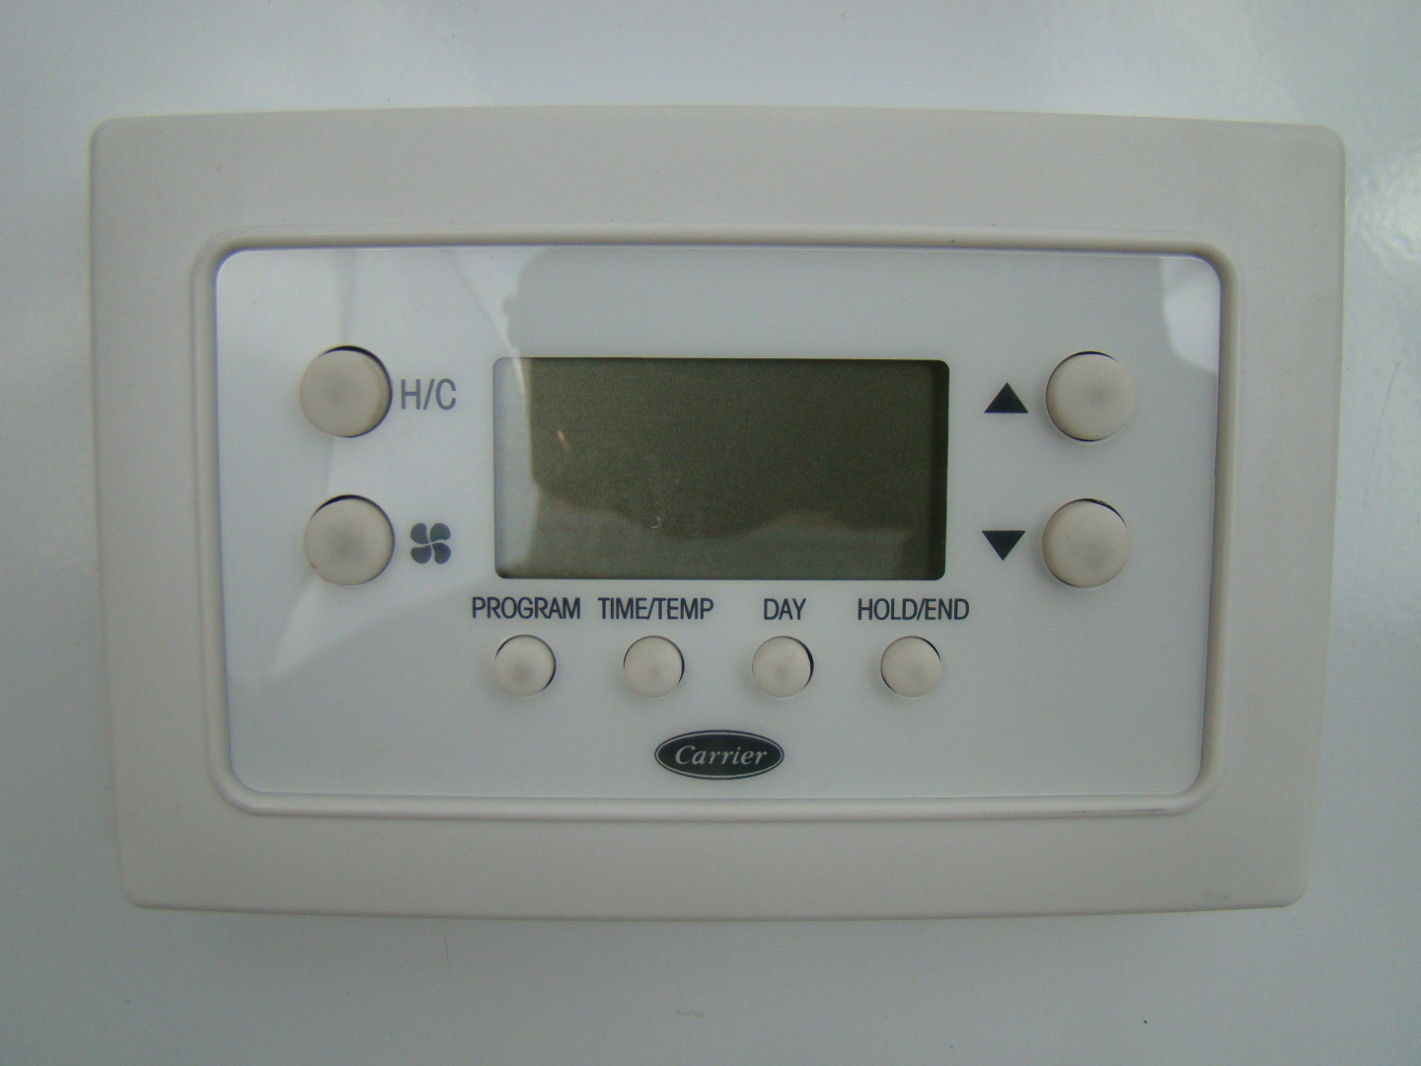 Carrier Digital Thermostat : Carrier programmable thermostat tb paco